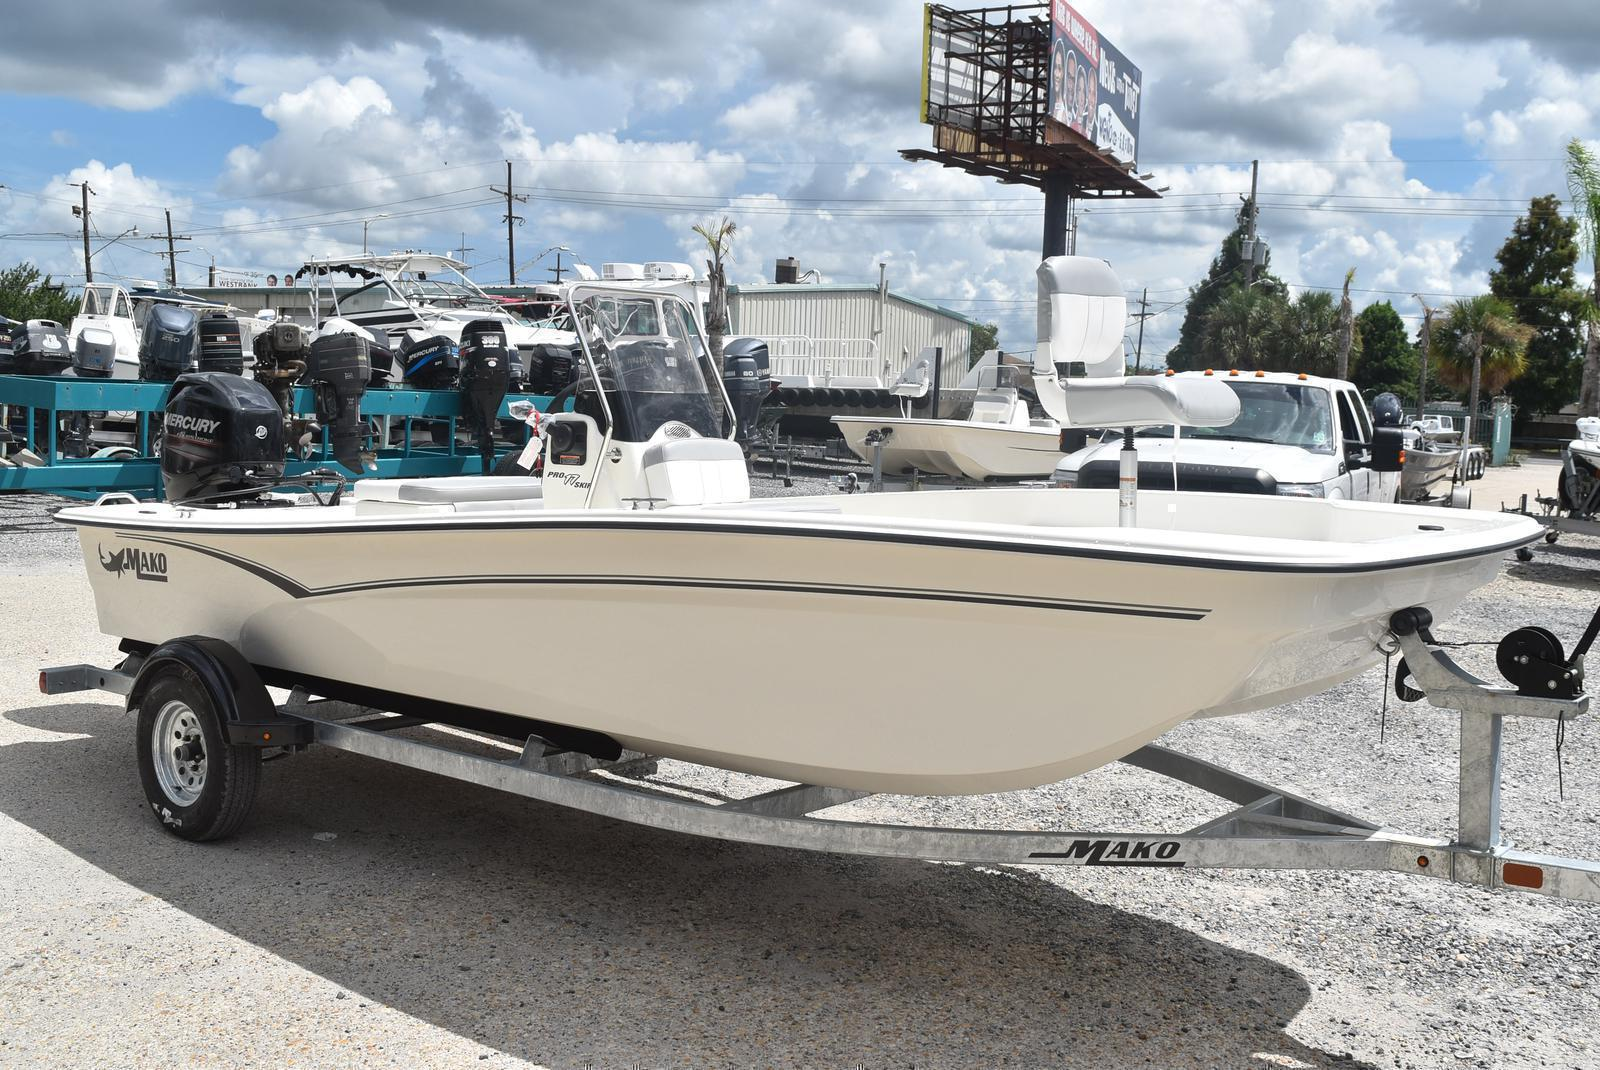 2020 Mako boat for sale, model of the boat is Pro Skiff 17, 75 ELPT & Image # 681 of 702